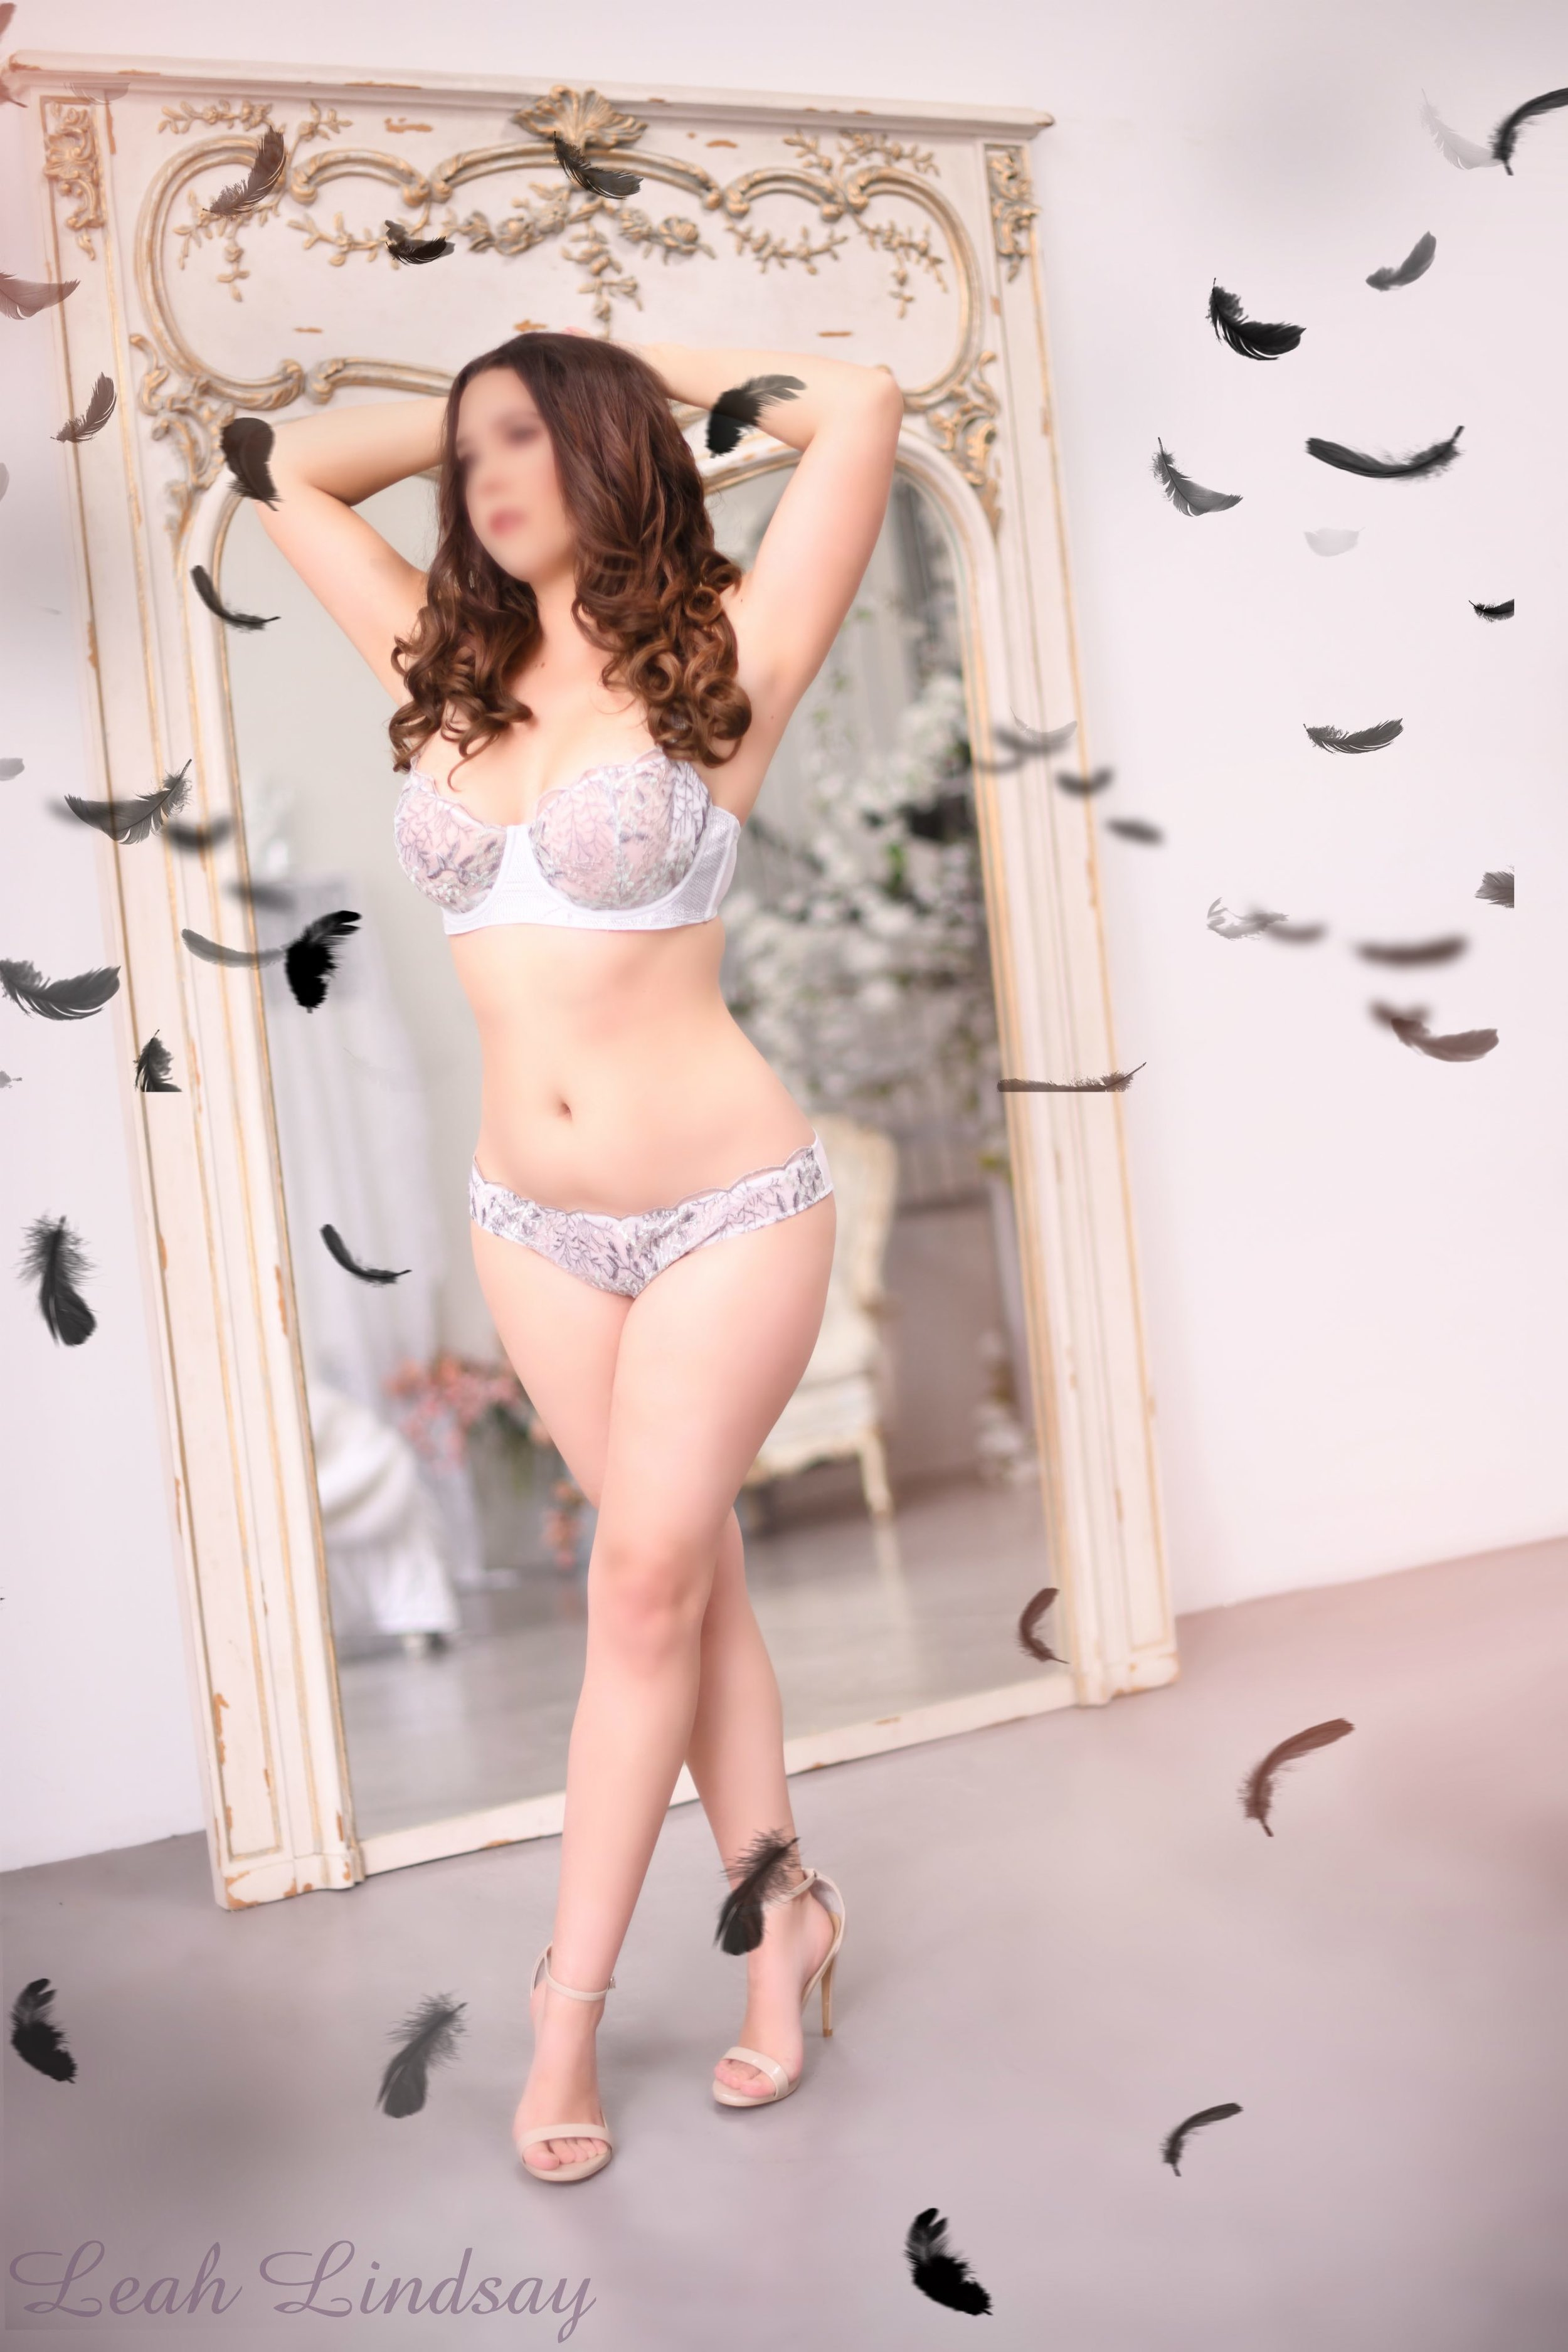 Leah Lindsay - Beautiful GFE Escort